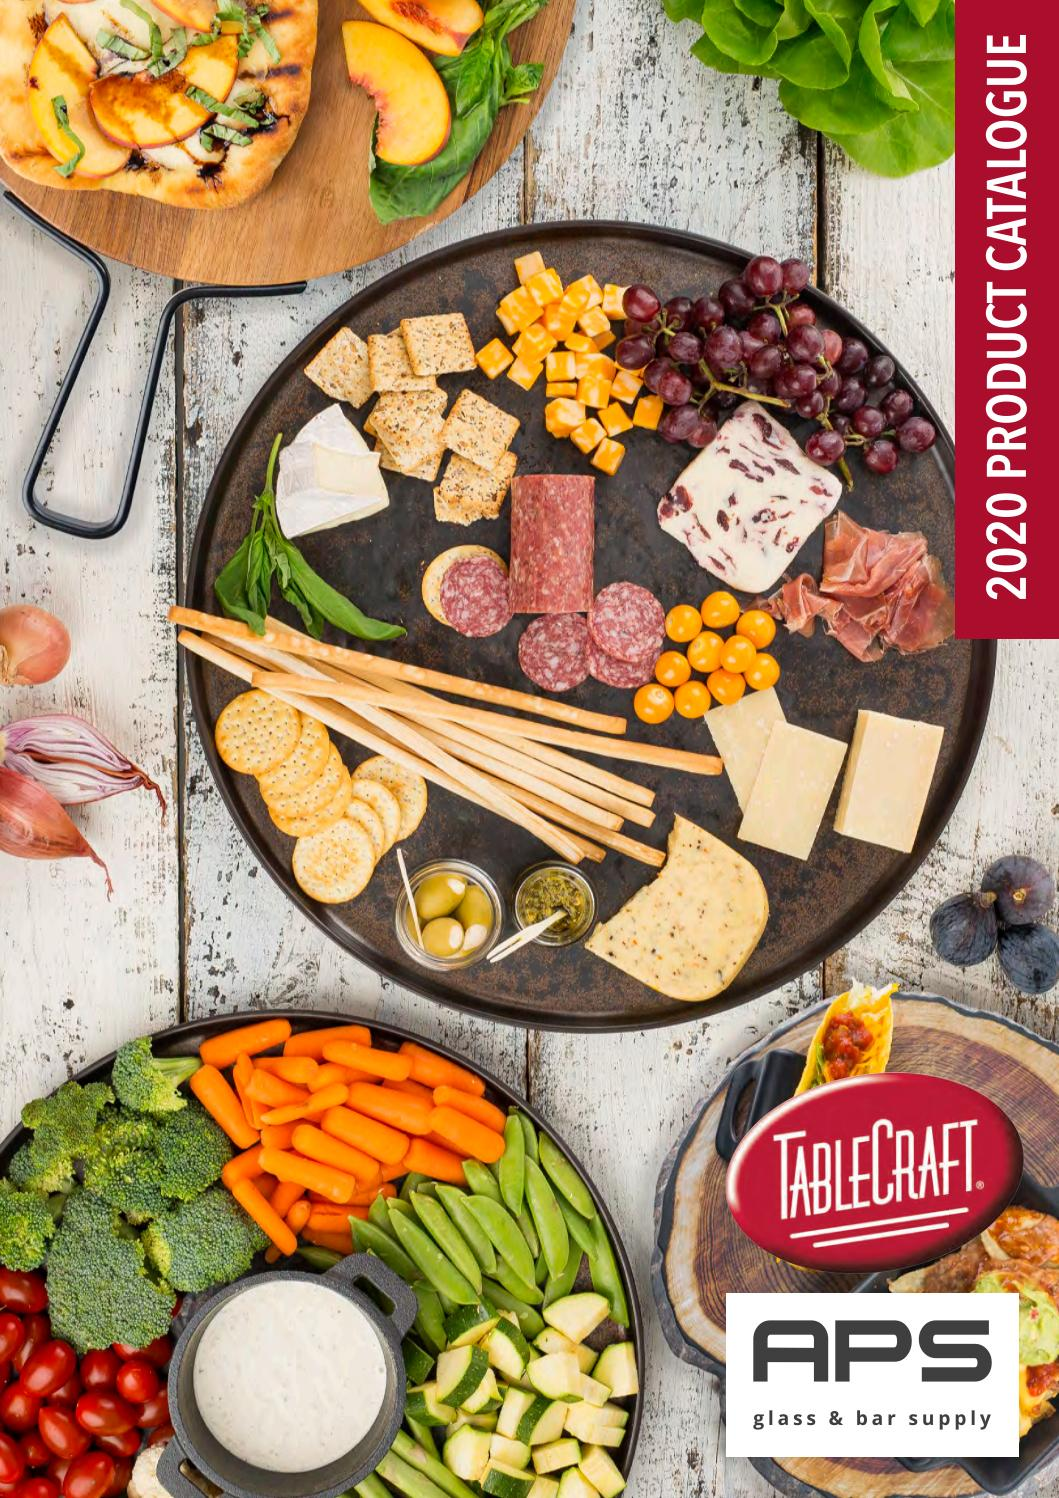 Tablecraft Catalogue 2020 By Aps Glass Bar Supply Issuu